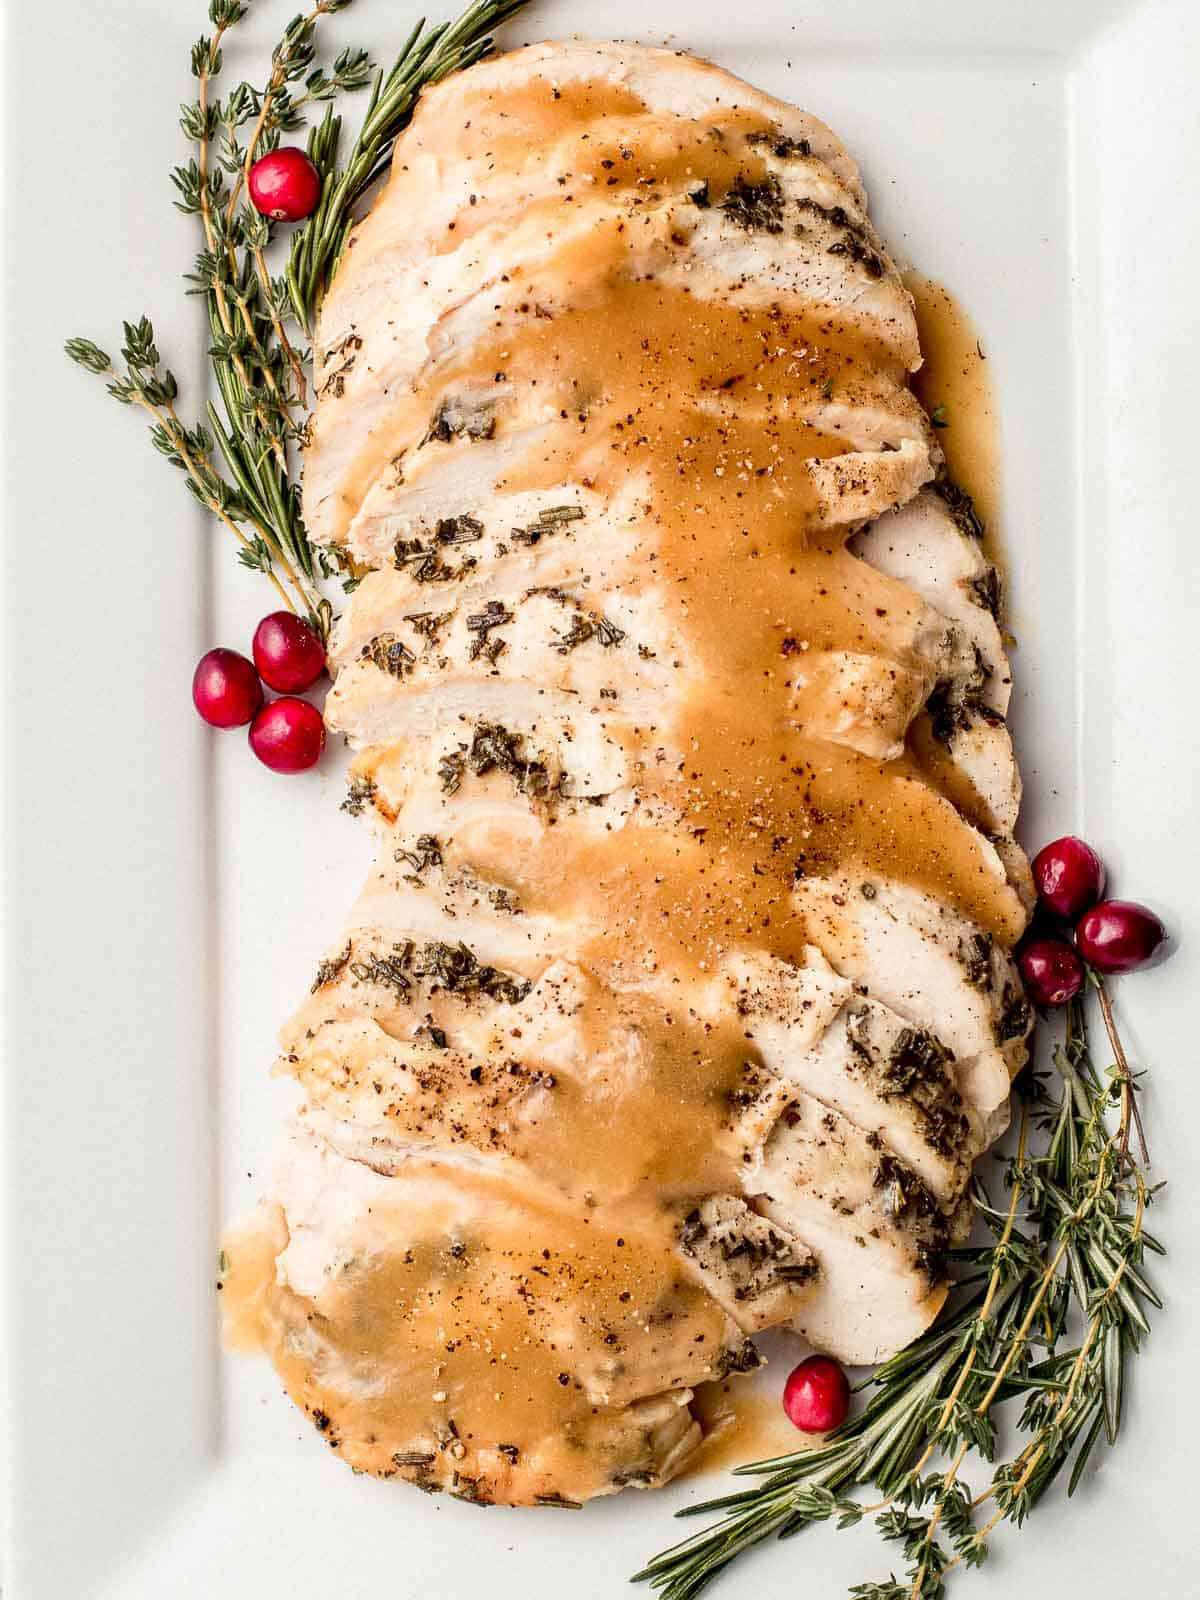 Slow cooker turkey breast on a platter with gravy.